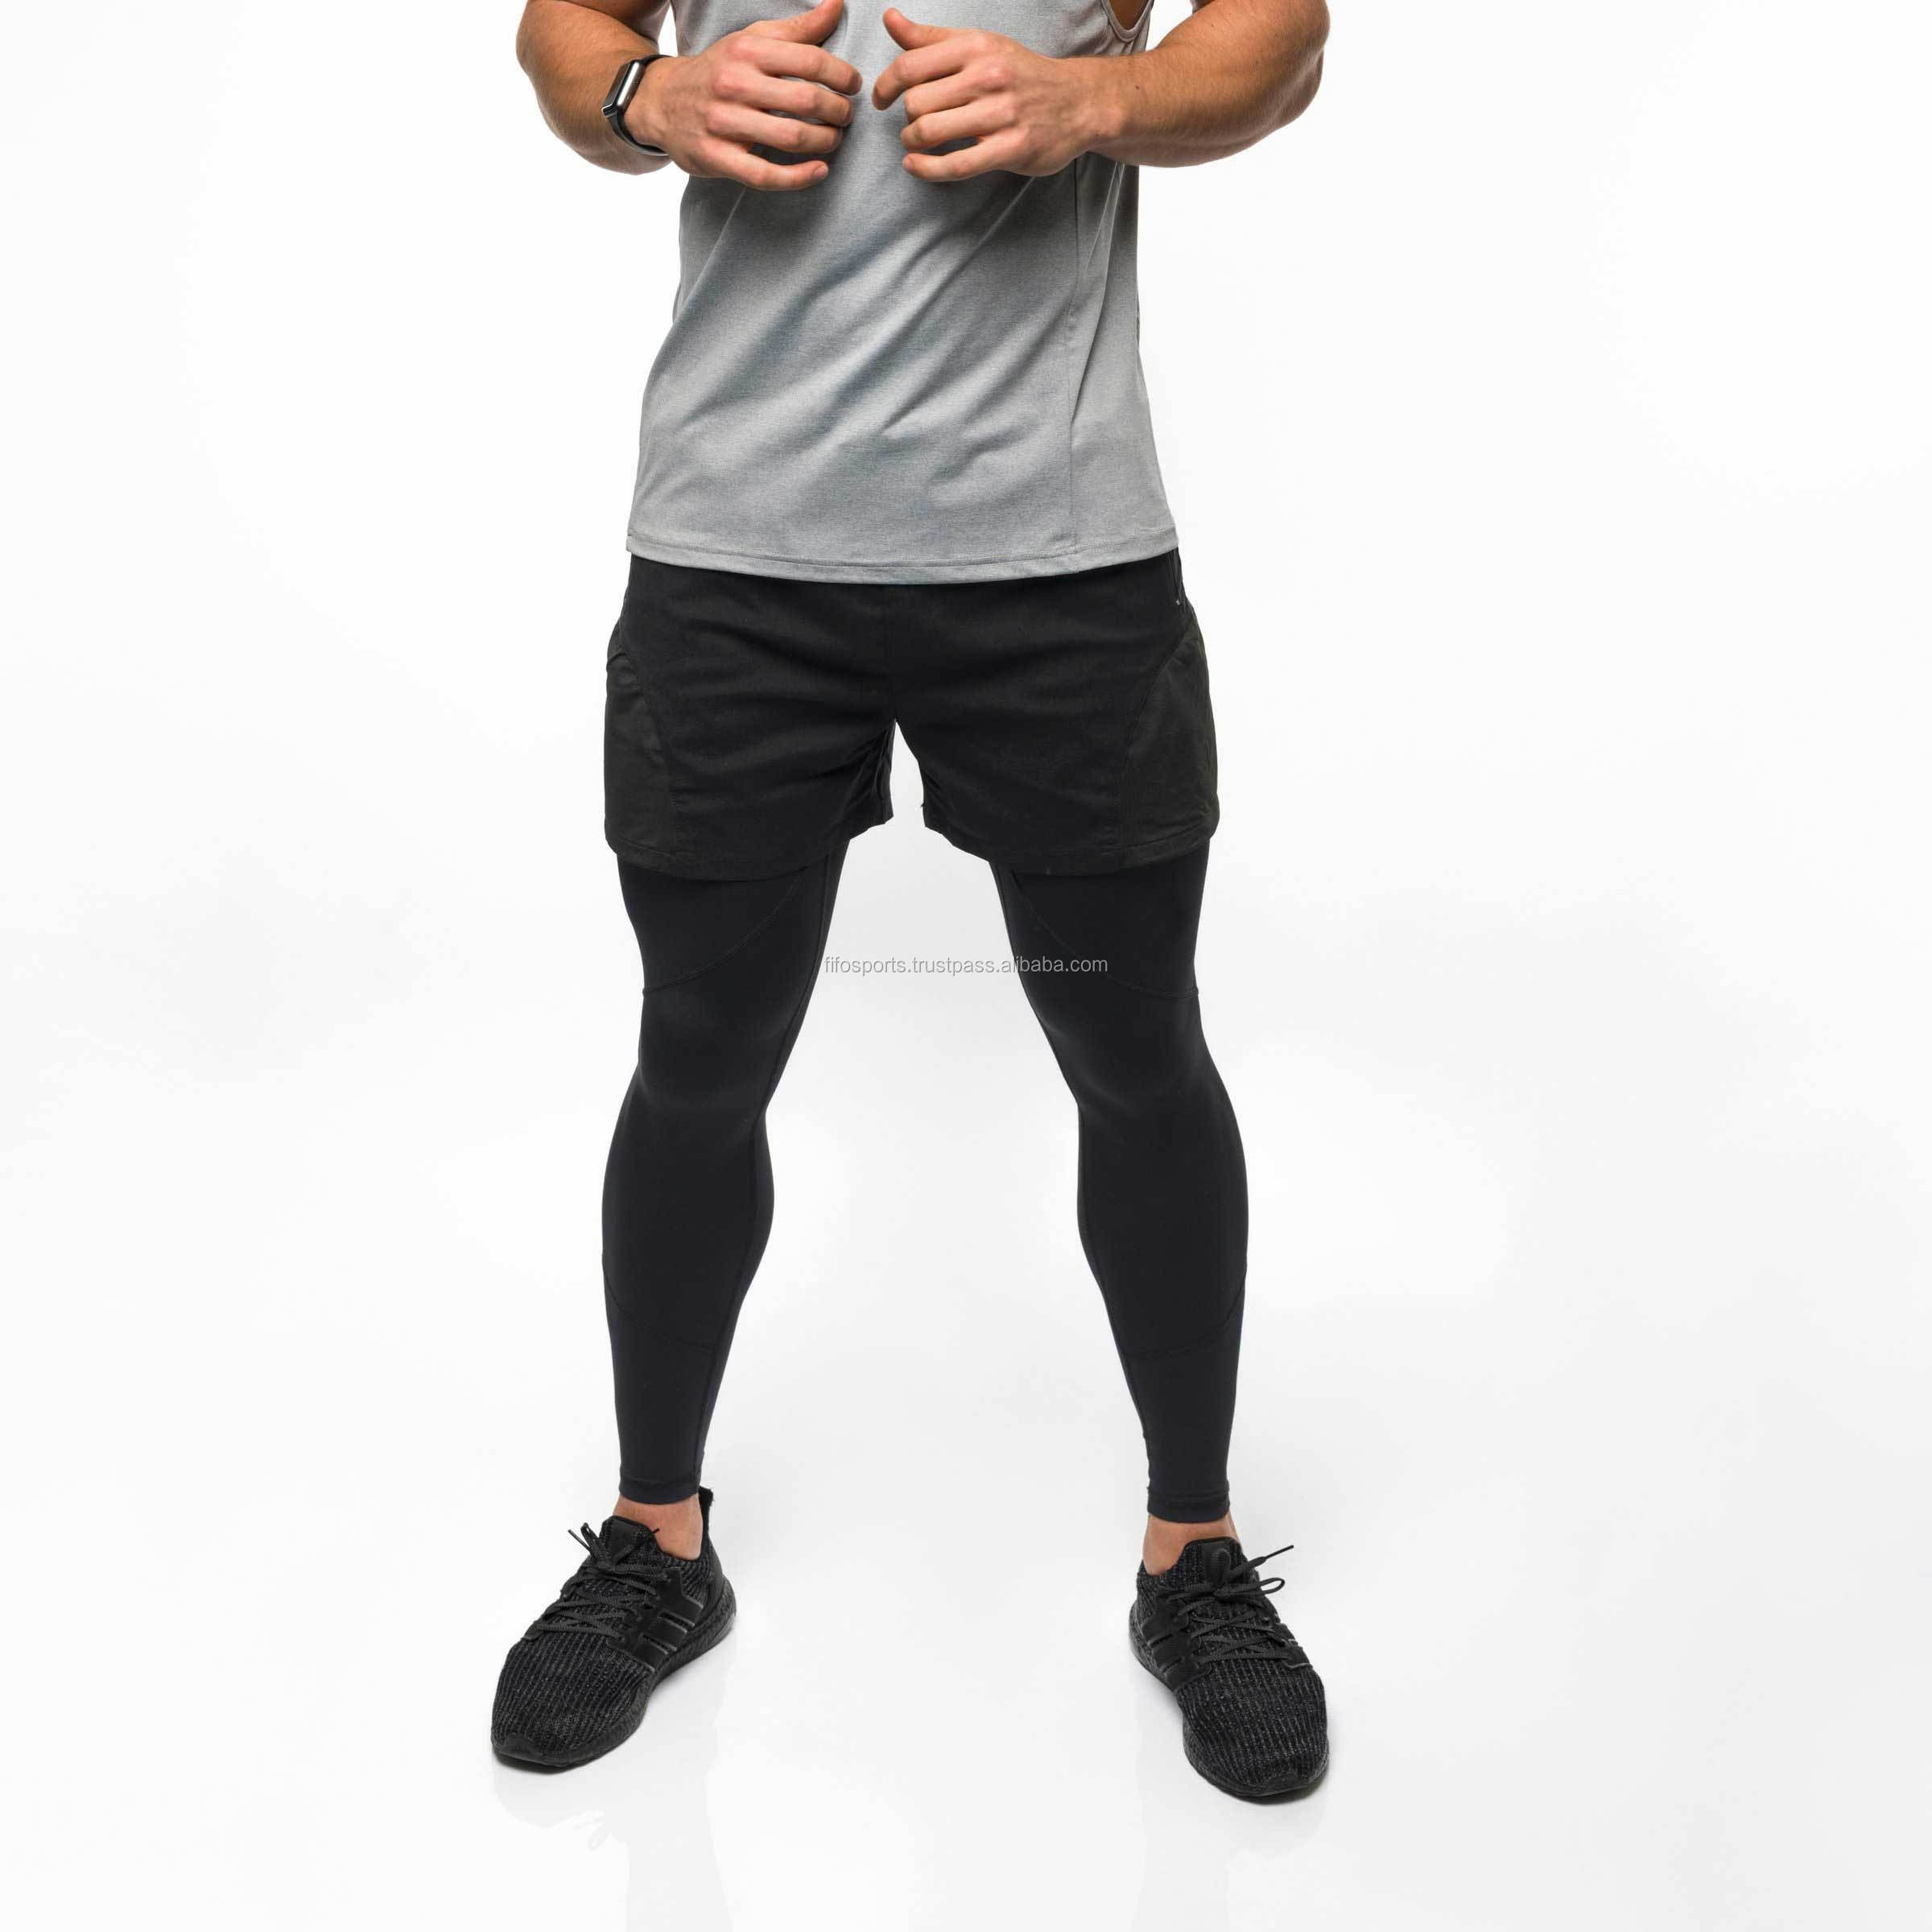 Basketball Compression Pants Sports Running Tights Men Jogging Leggings Fitness Gym Clothing Sport Leggings Yoga Leggings Men Buy Compression Pants Sports Running Tights Men Jogging Leggings Fitness Gym Clothing Sport Leggings Yoga Leggings